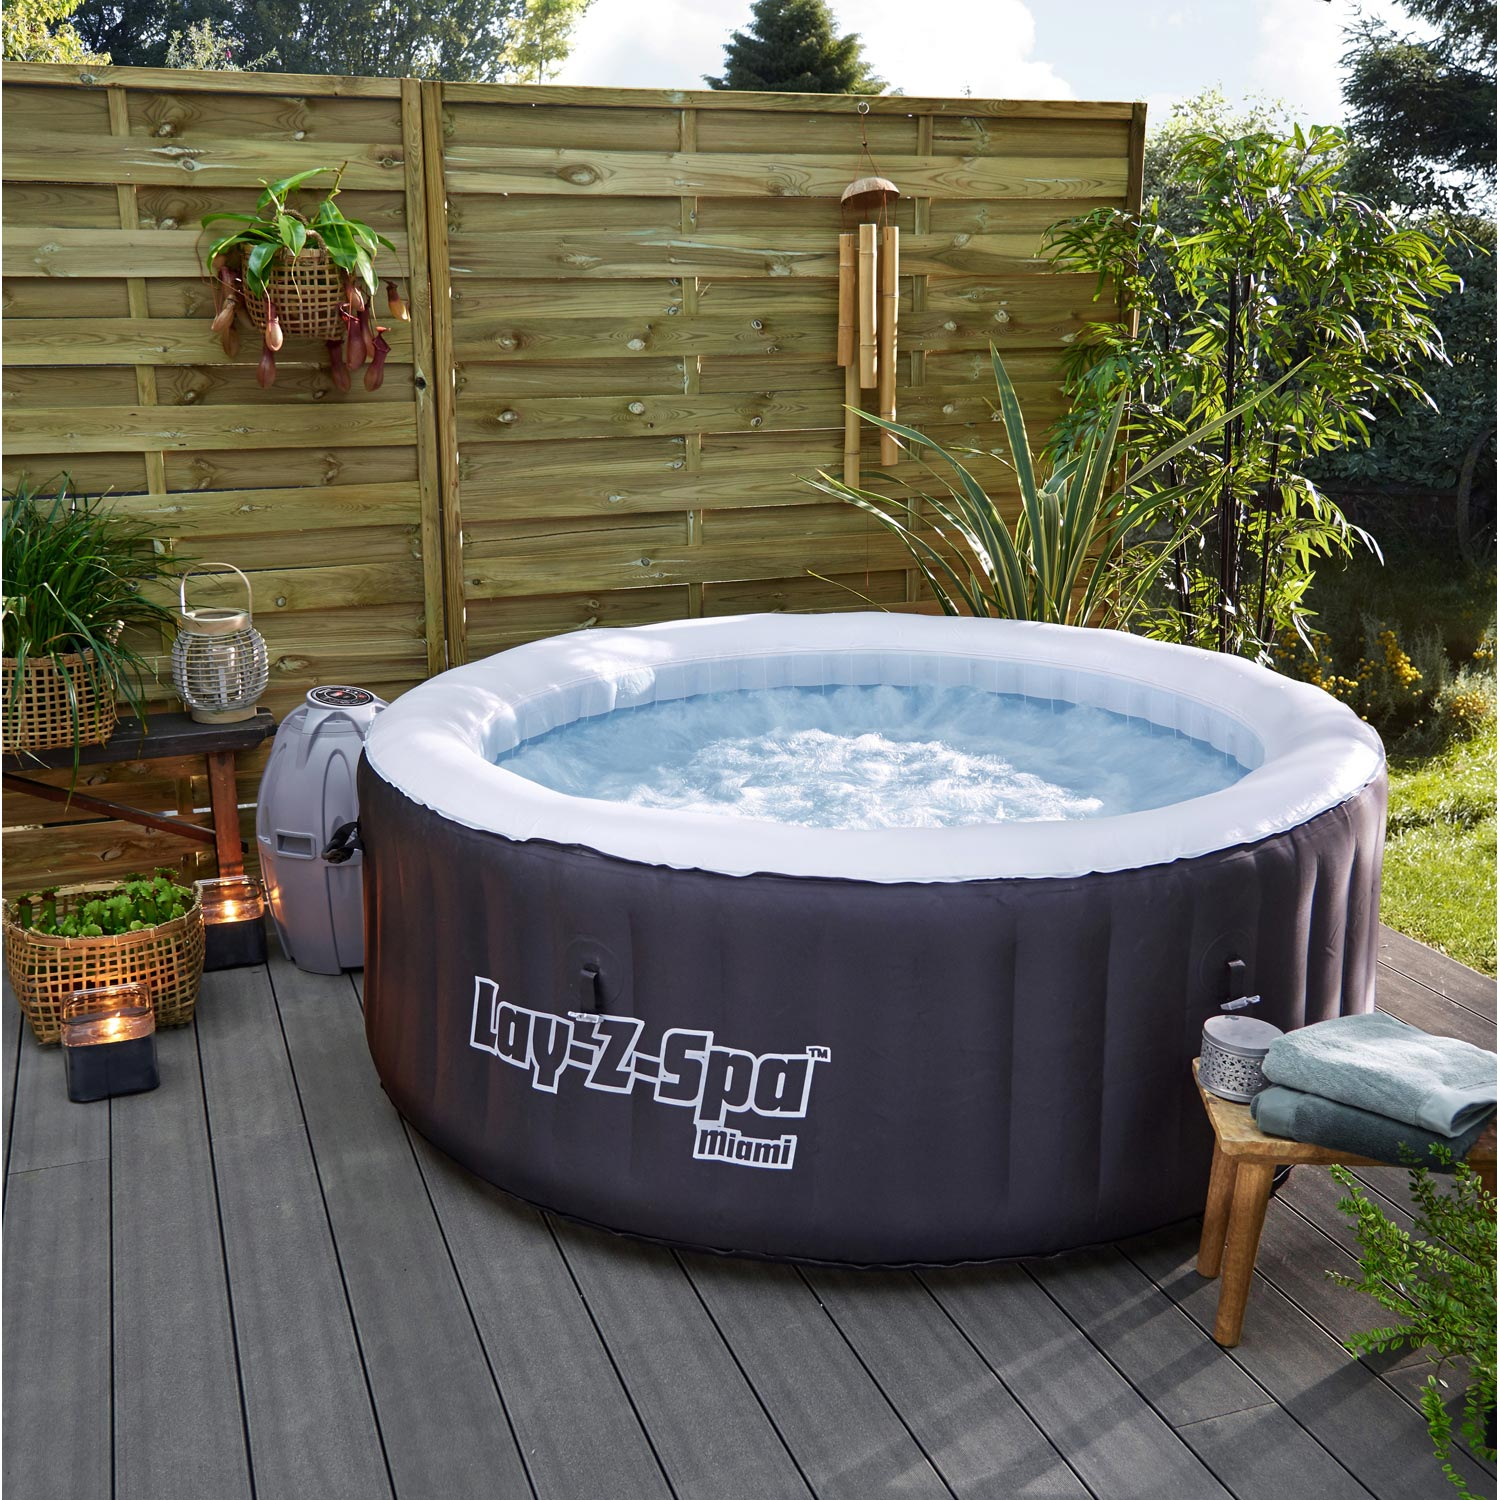 Spa gonflable bestway miami rond 4 places assises leroy merlin - Jacuzzi rond exterieur ...